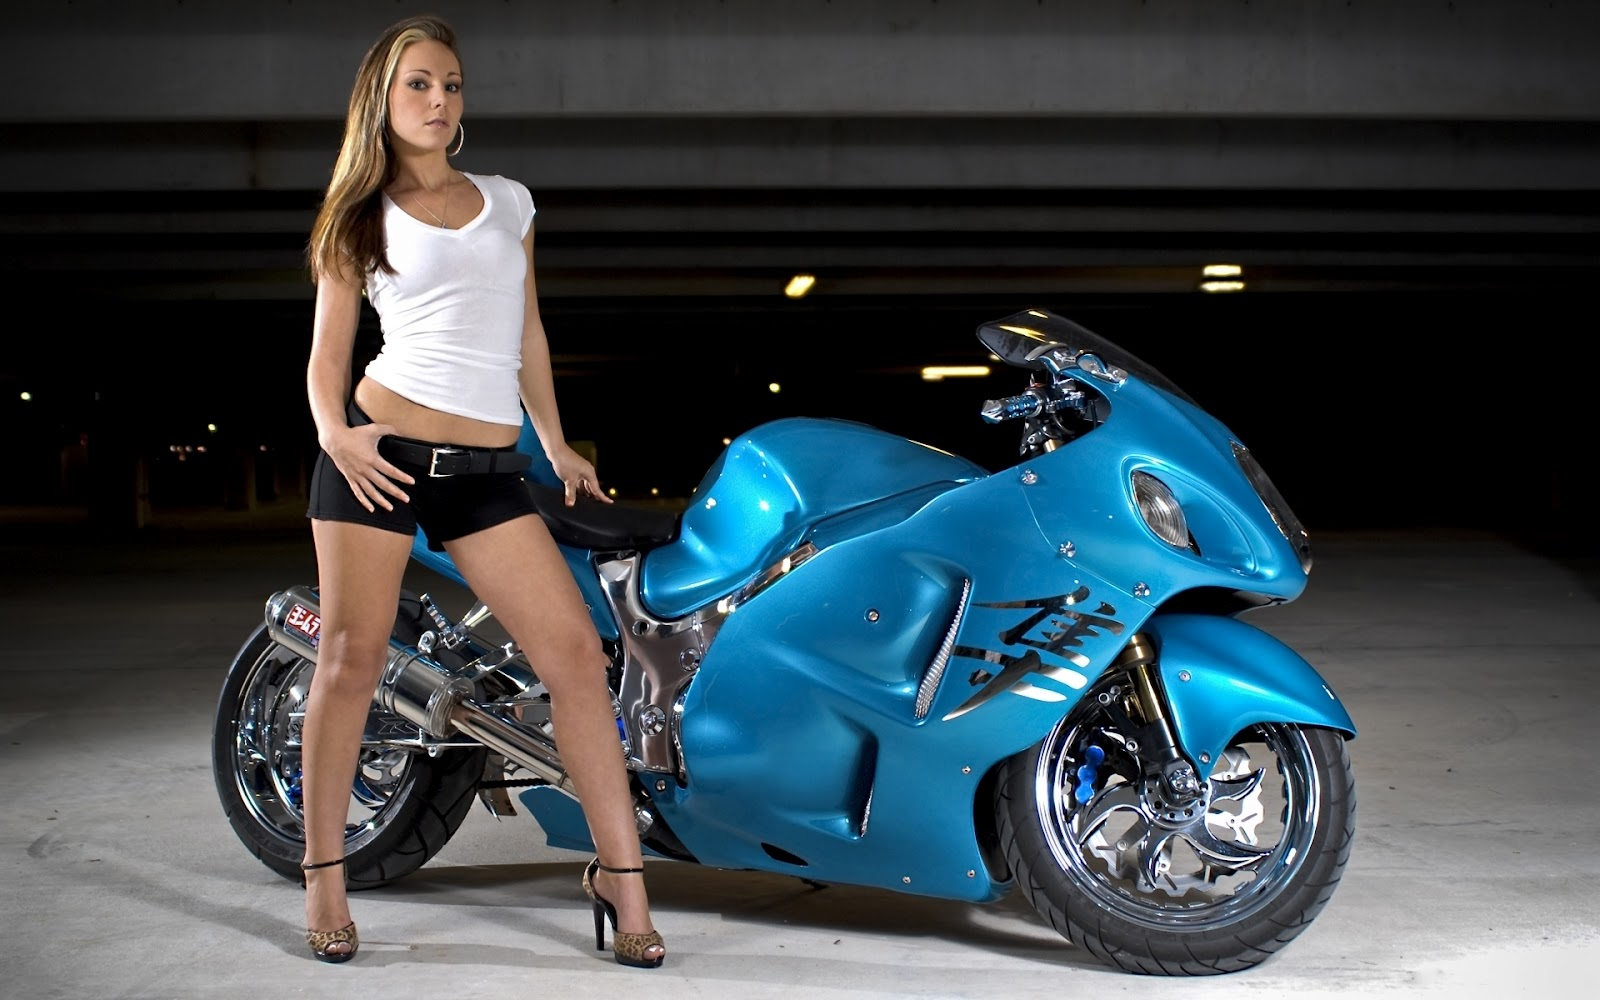 Auto zone for speed lovers all about suzuki motorcycles sports cars fastest cars sports